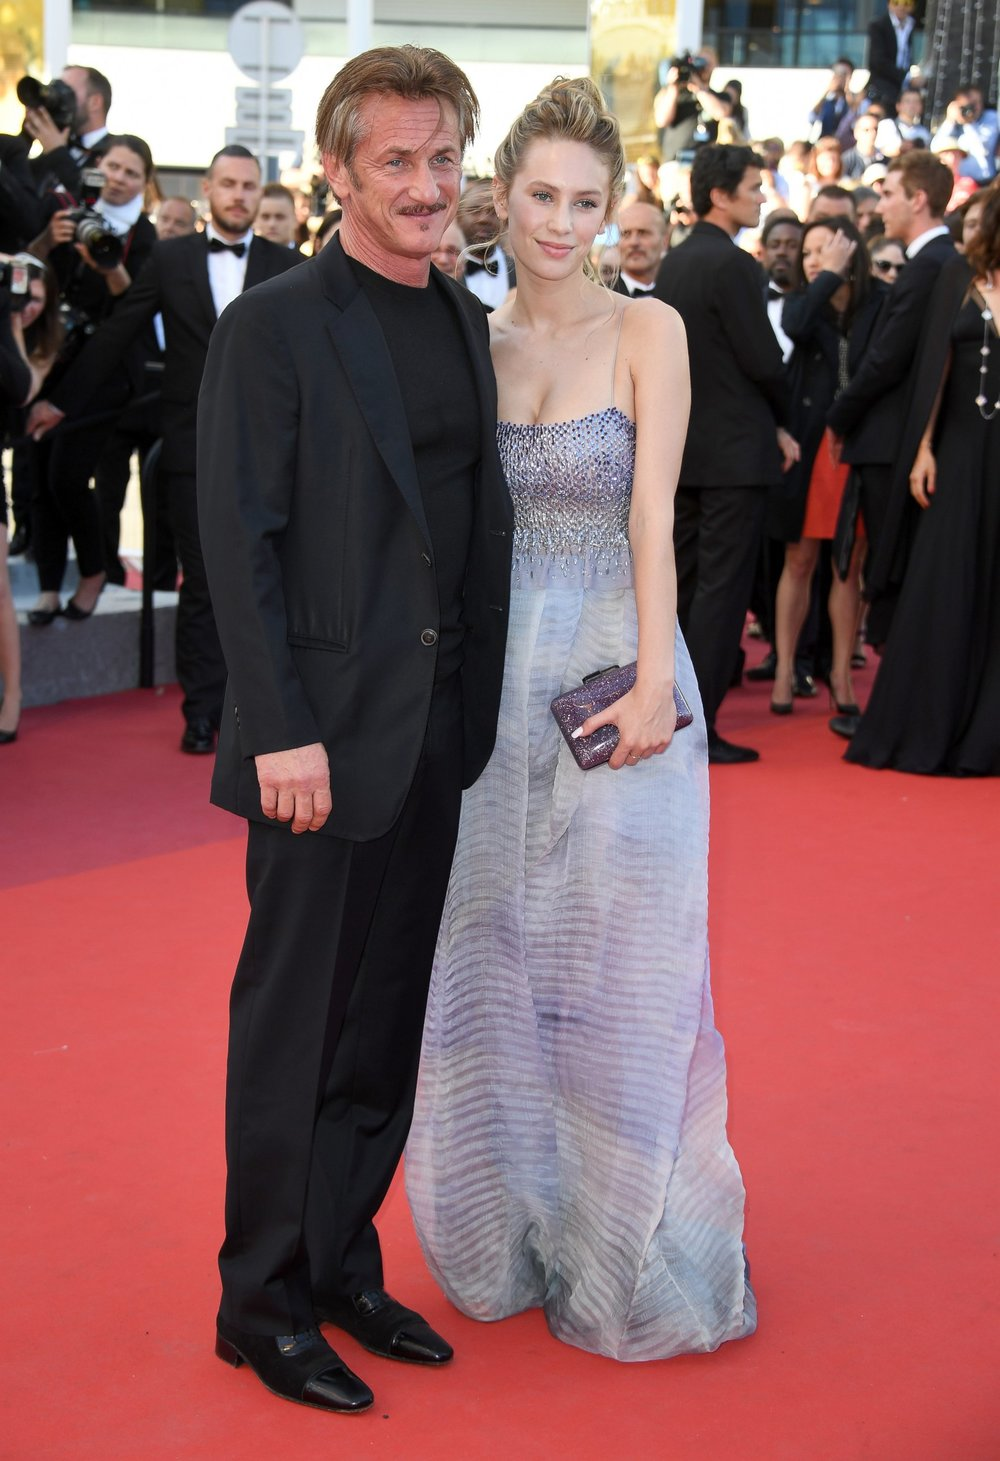 GTY_sean_penn_daughter_cannes_hb_160520.jpg